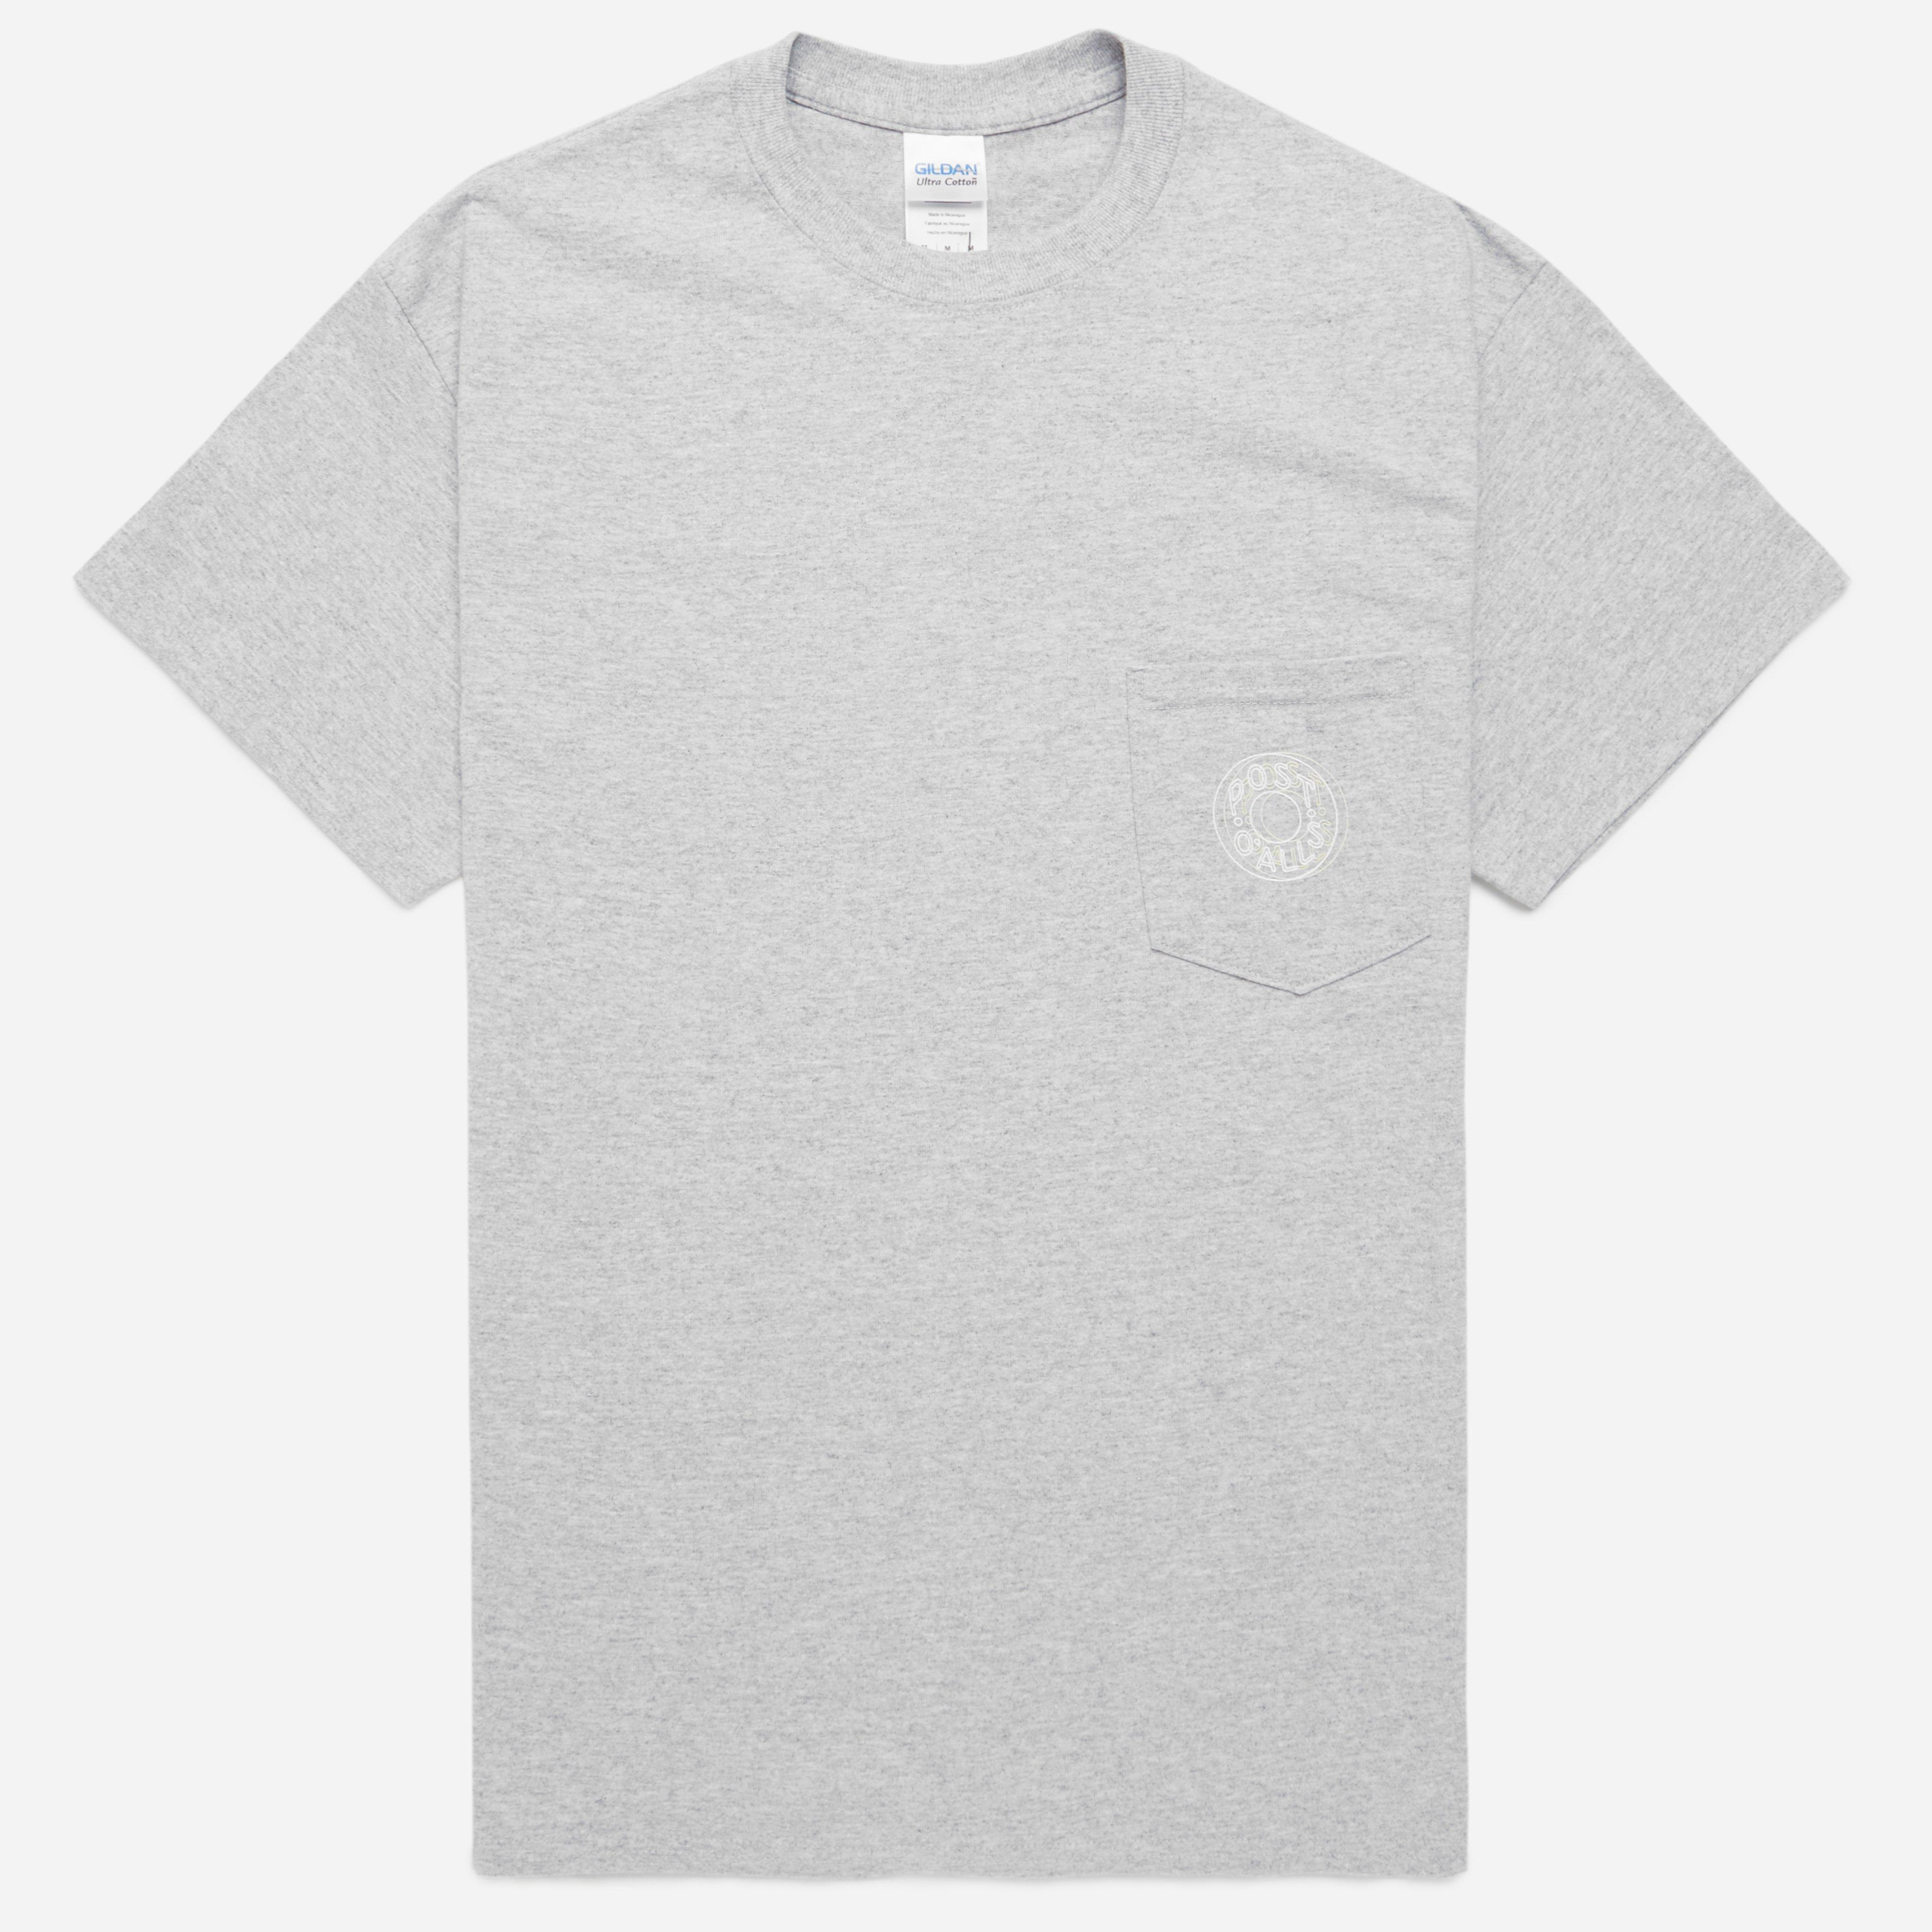 Post Overalls ESS Pocket T-shirt